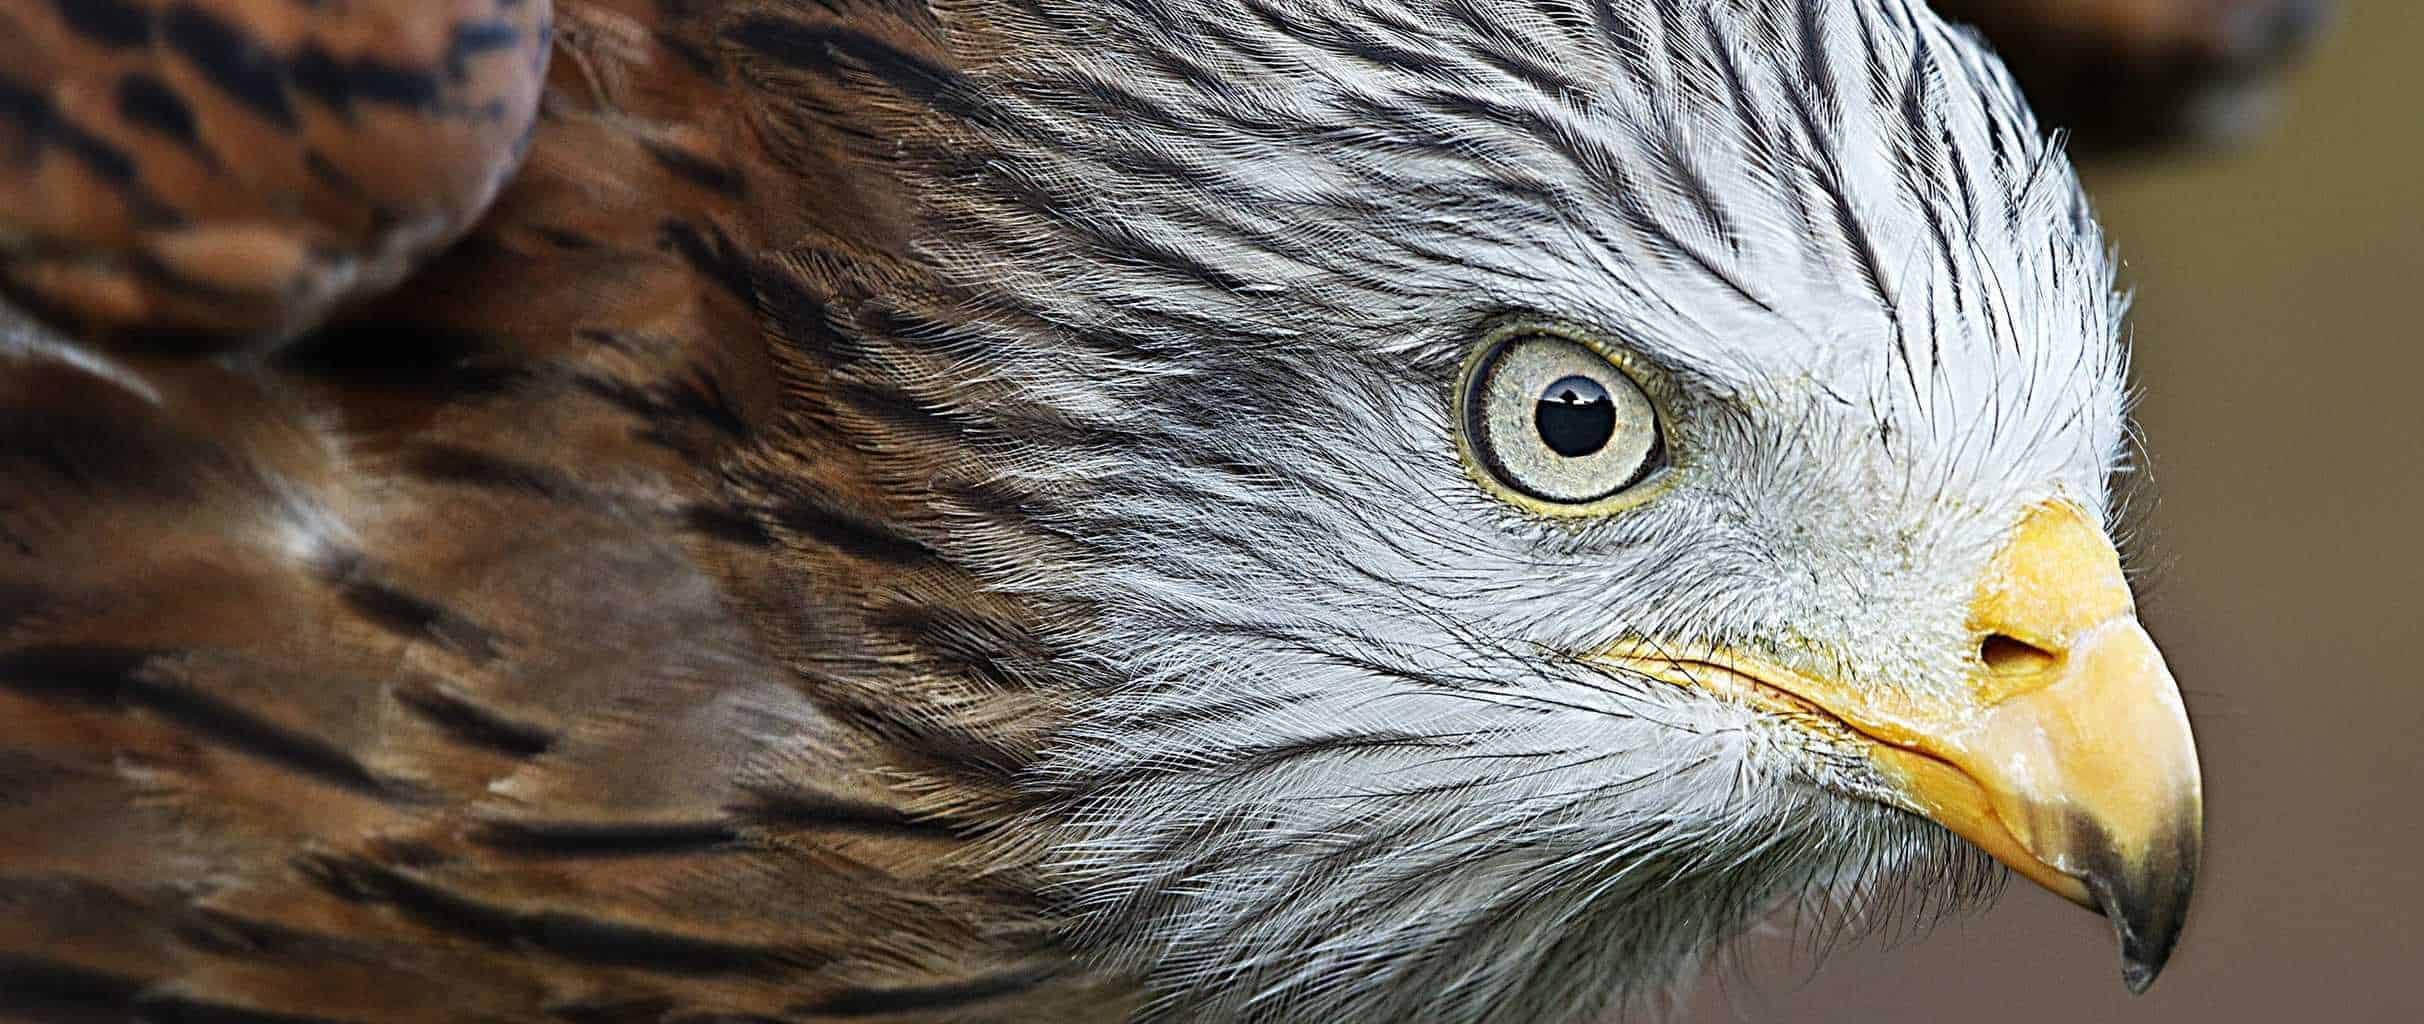 Red Kite at the National Centre for Birds of Prey, Duncombe Park, Helmsley UK